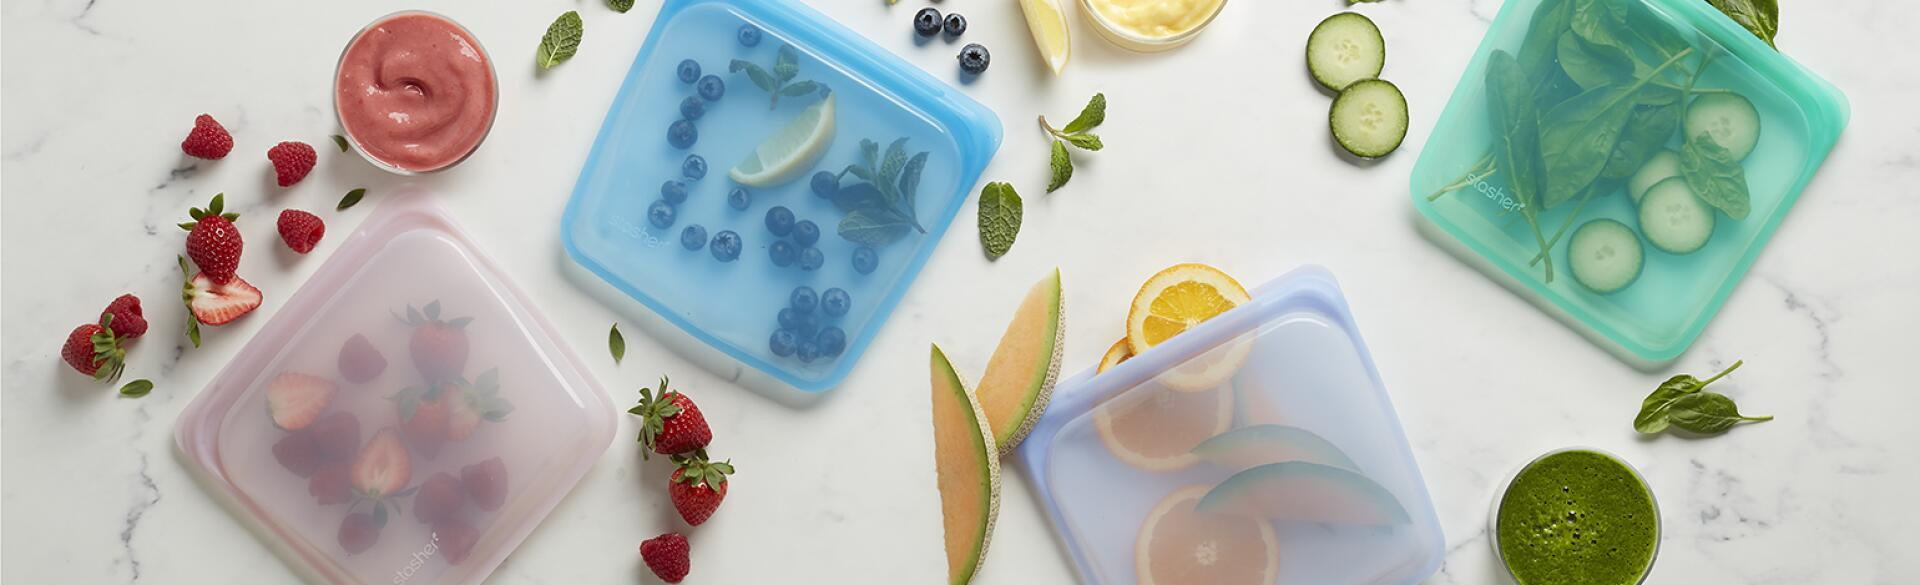 reusable lunch bags filled with fruits and vegetables